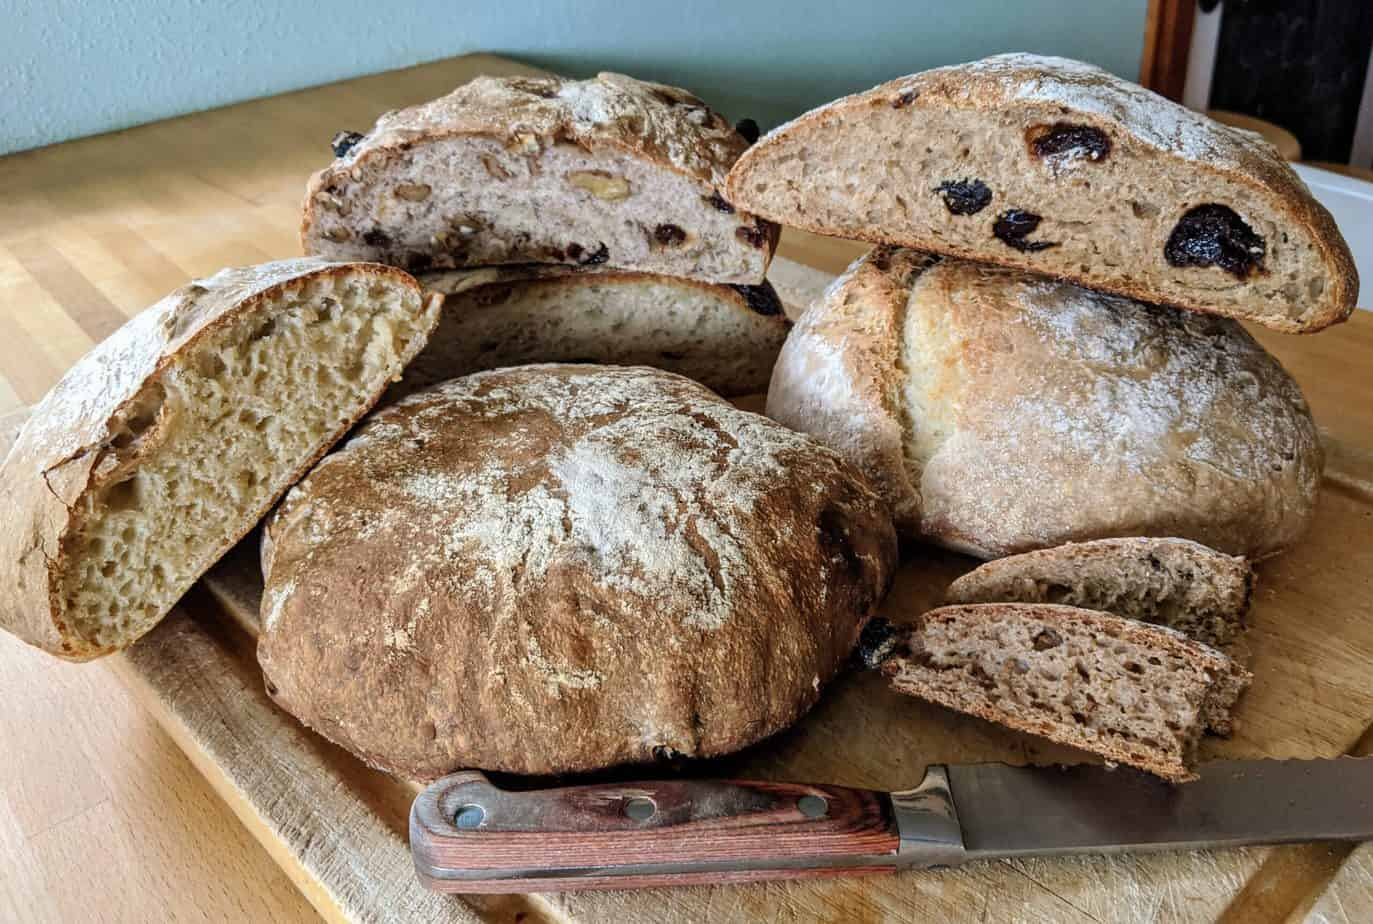 Selection of various bread types